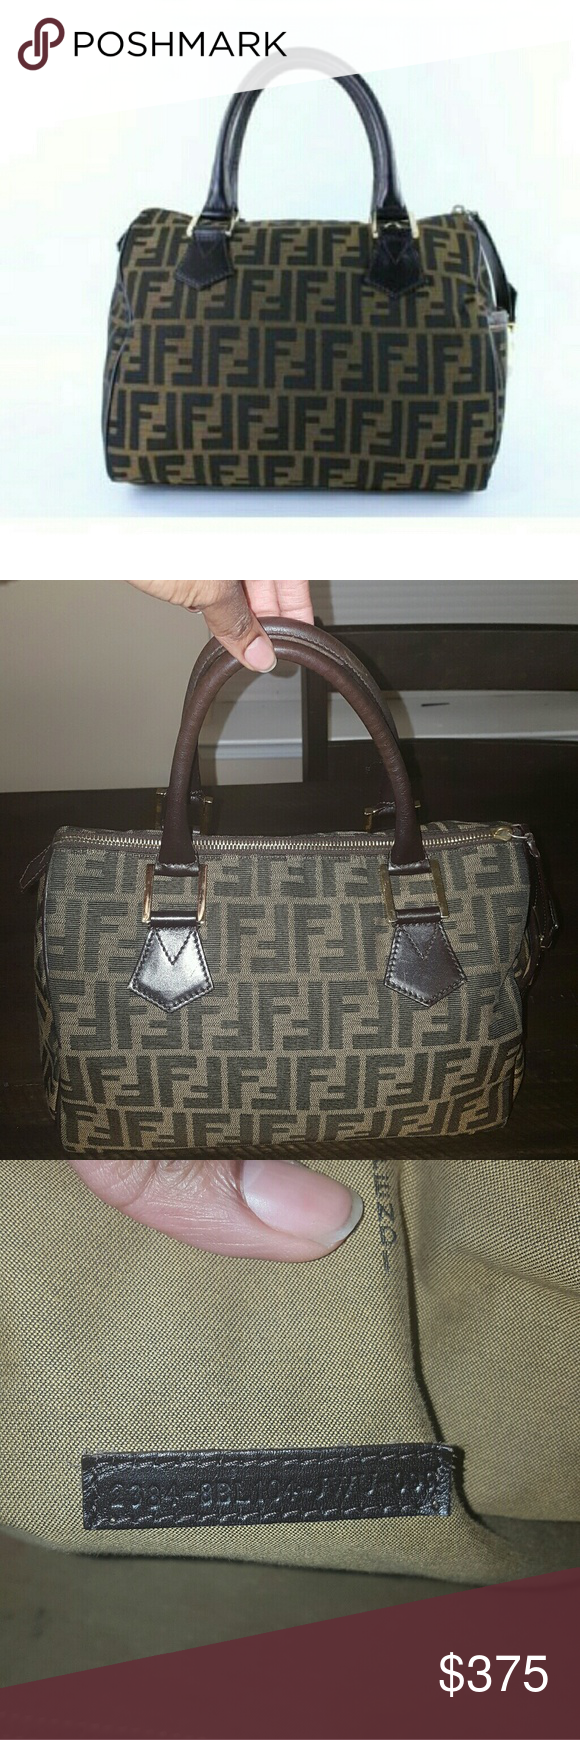 ee7bb7d3c5c Fendi Bag Brown Monogram Zucca Canvas Medium Chef Boston Satchel. Gently  used with normal wear and tear. There is a stain in the bottom as shown in  the ...